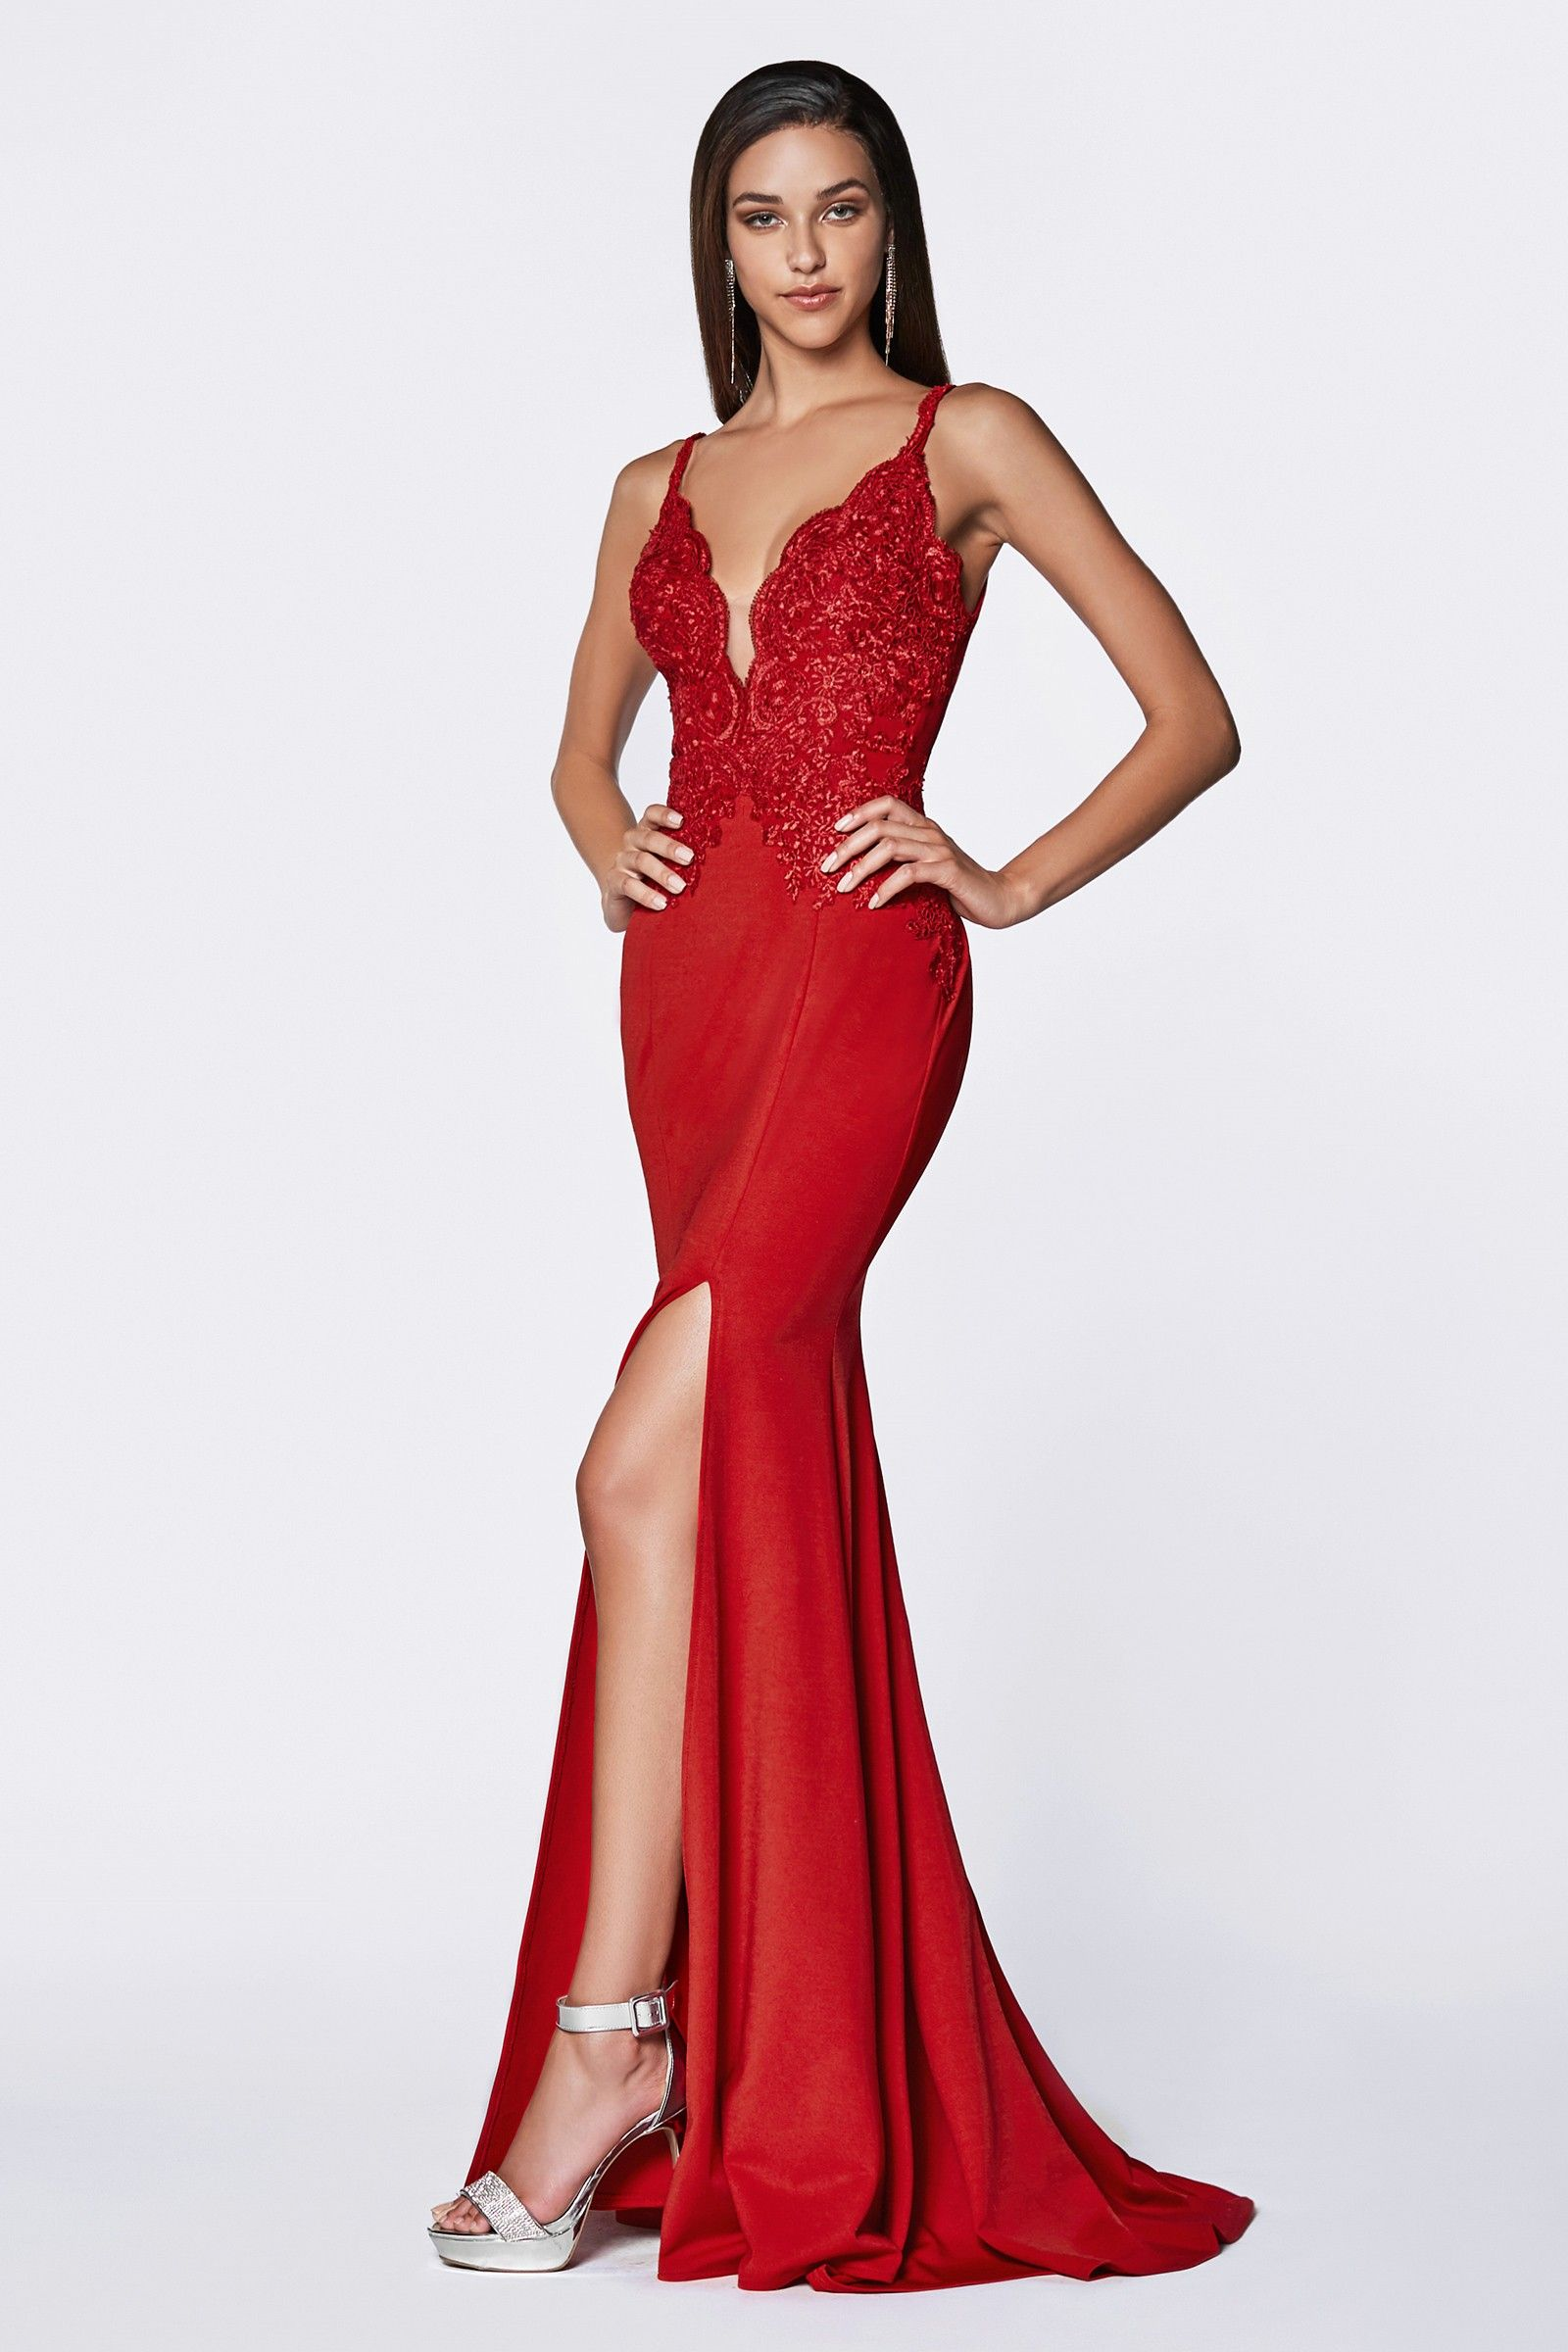 7c948e742d61 CF319 ( by Cinderella Divine ) | My Dress Faves in 2019 | Prom ...